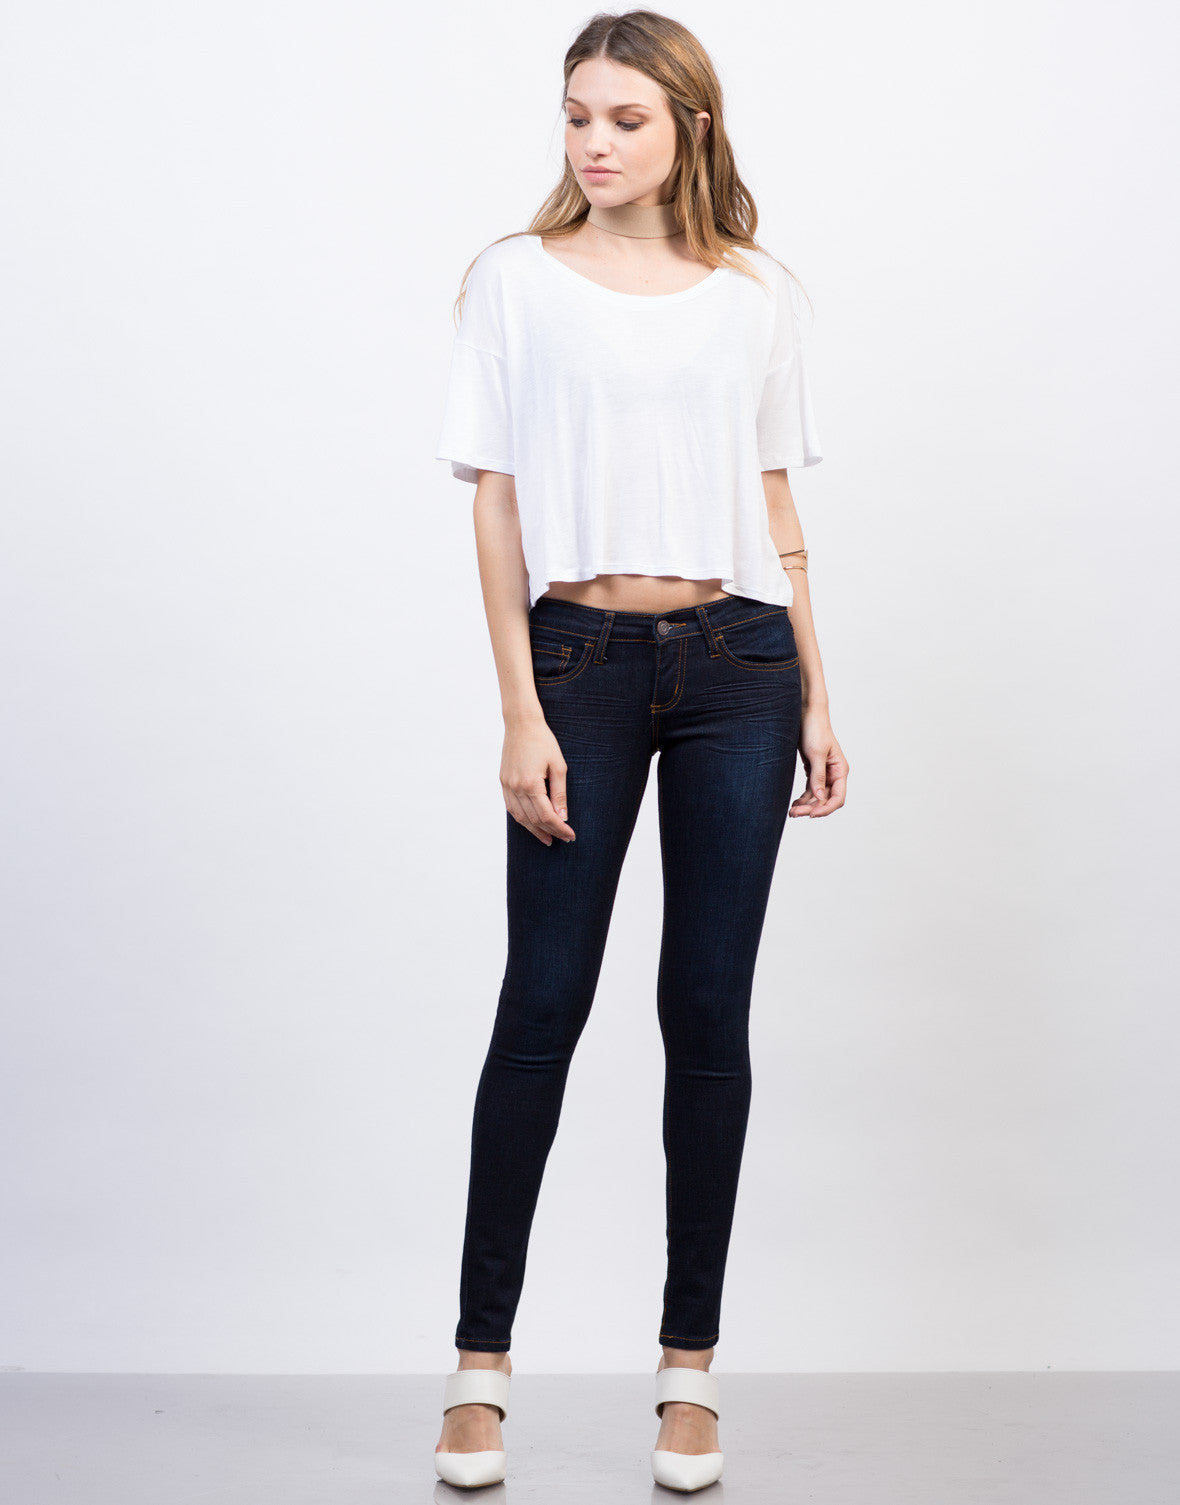 Front View of Classic Dark Skinny Jeans